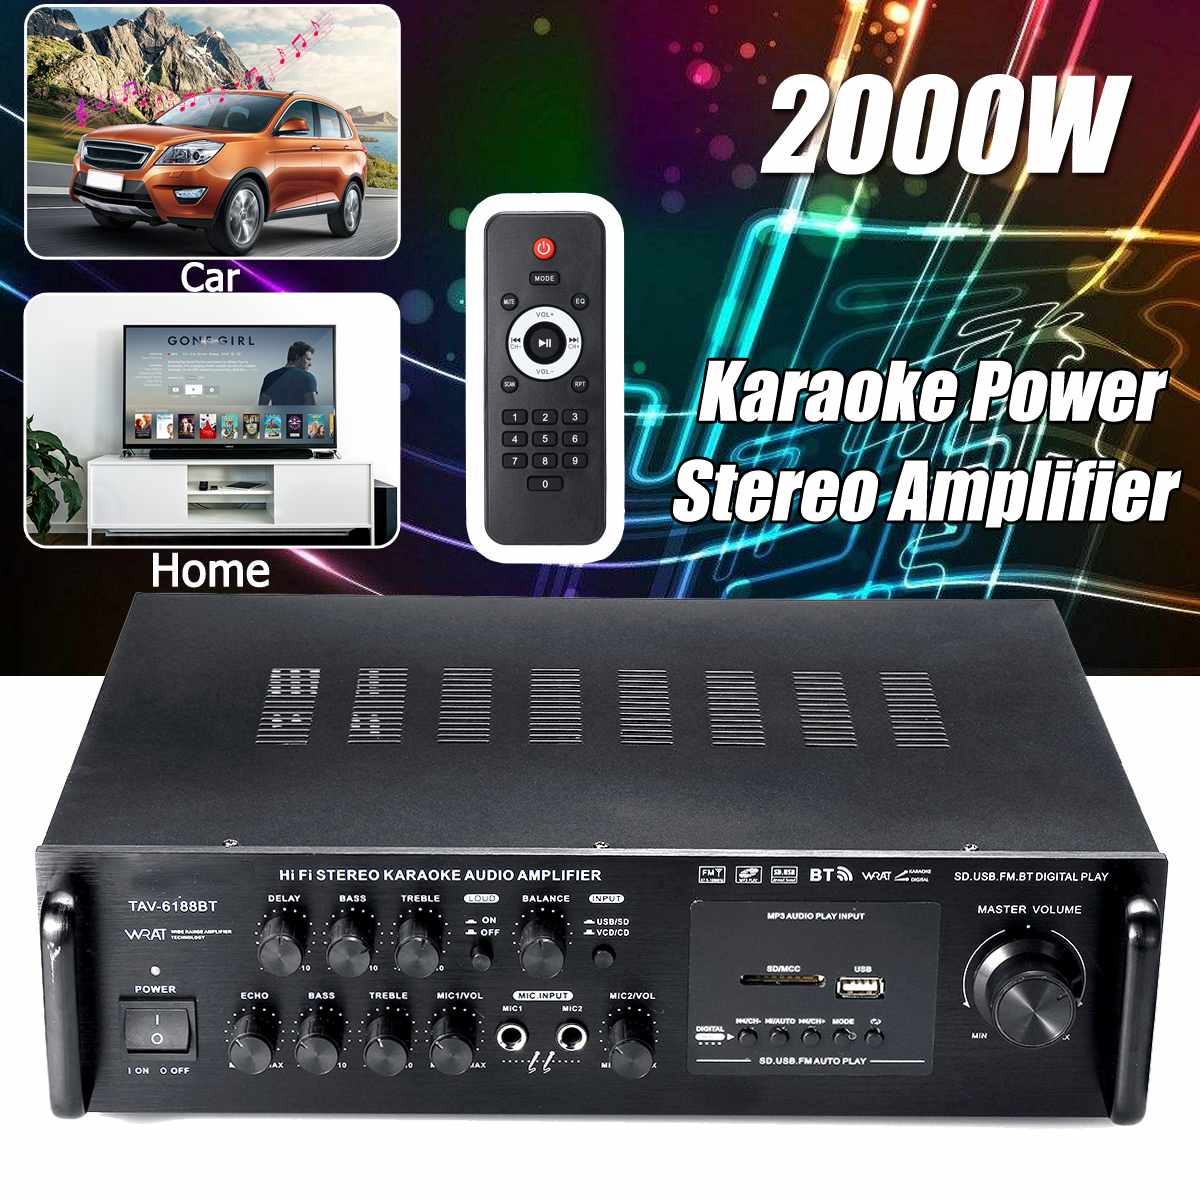 2000W 220V Car Amplifier Audio Power Amplifier bluetooth Stereo Home Theater Amplifier USB SD FM BT Player with Remote Control